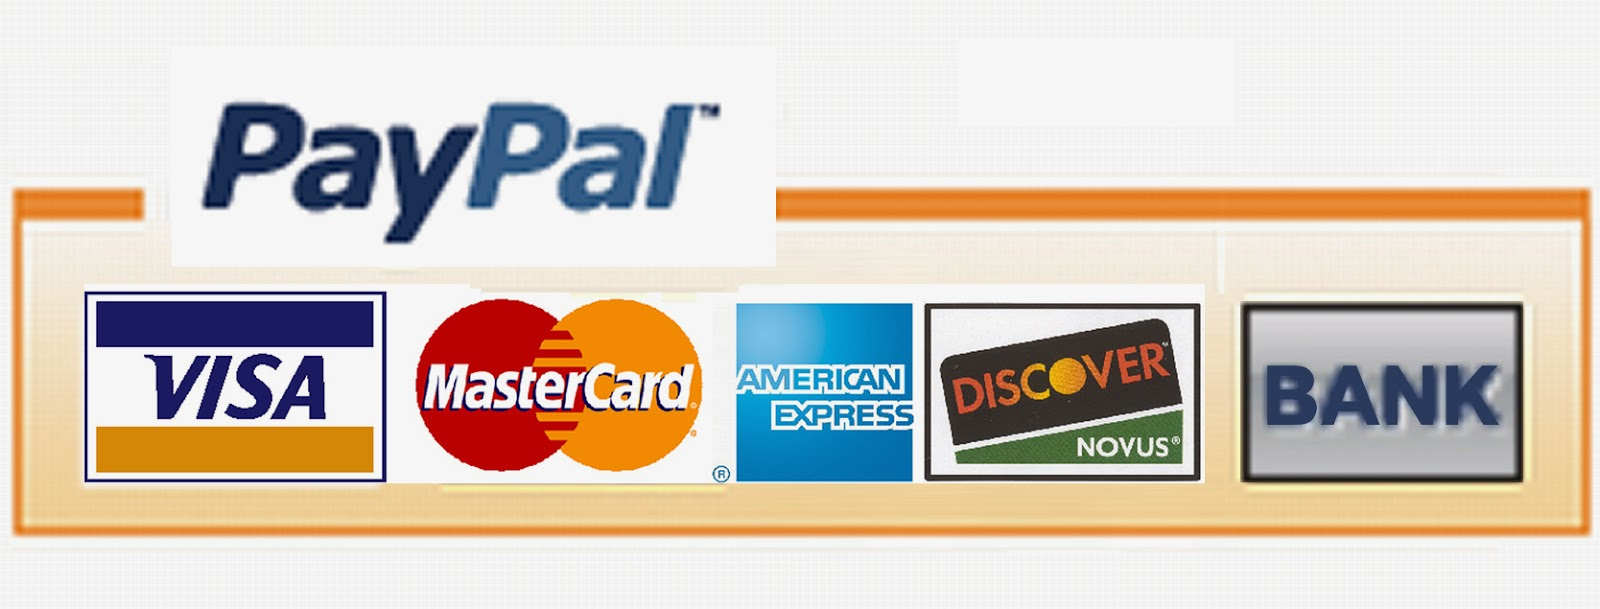 Paypal now accepts Nigeria, zimbabwe and 8 other countries in sub-saharan Africa